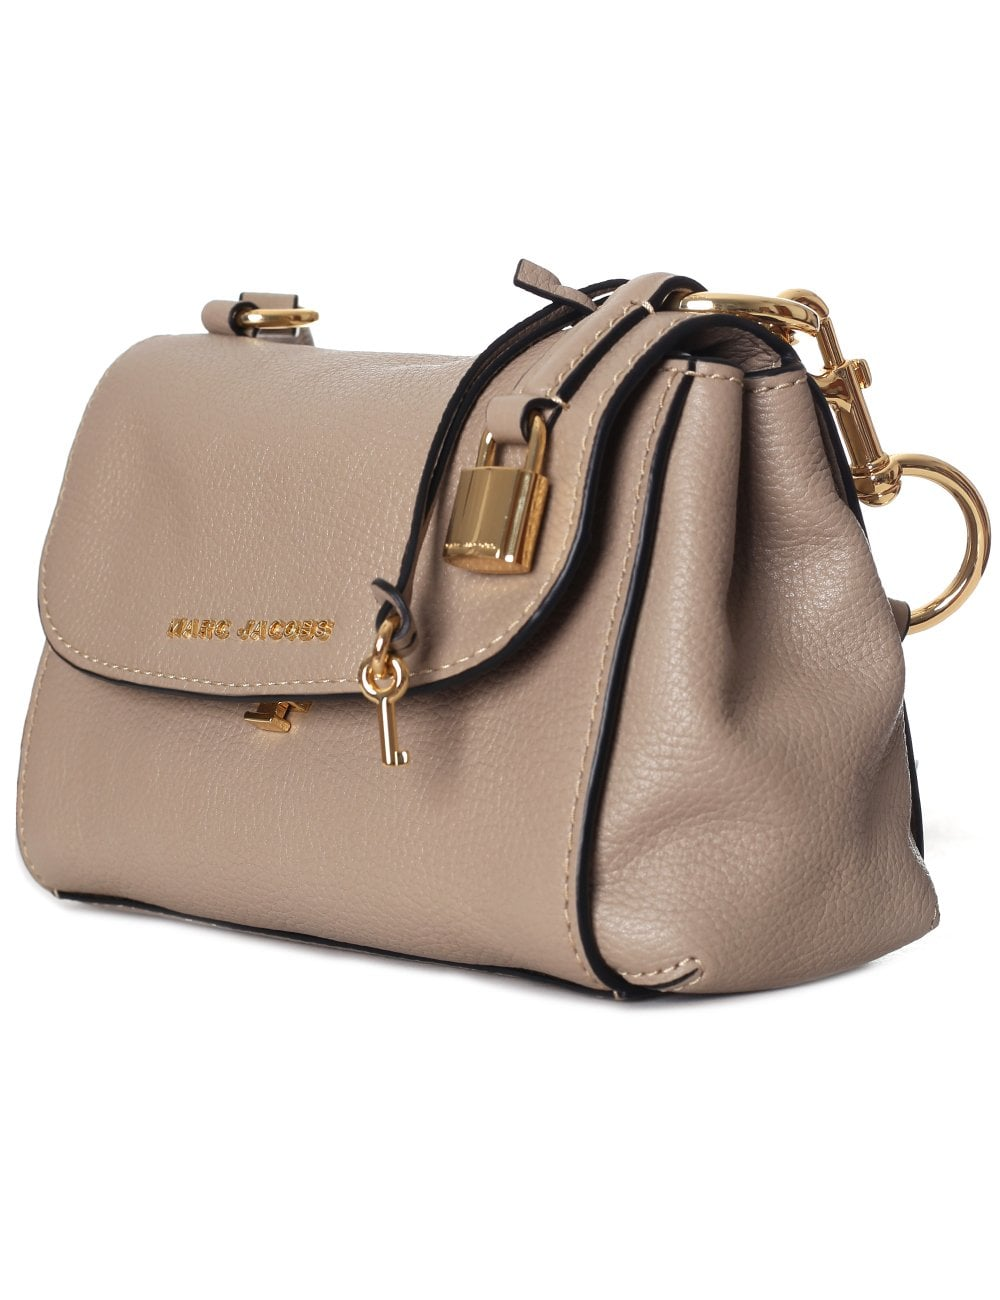 4e80bd72e046 Marc Jacobs The Mini Boho Grind